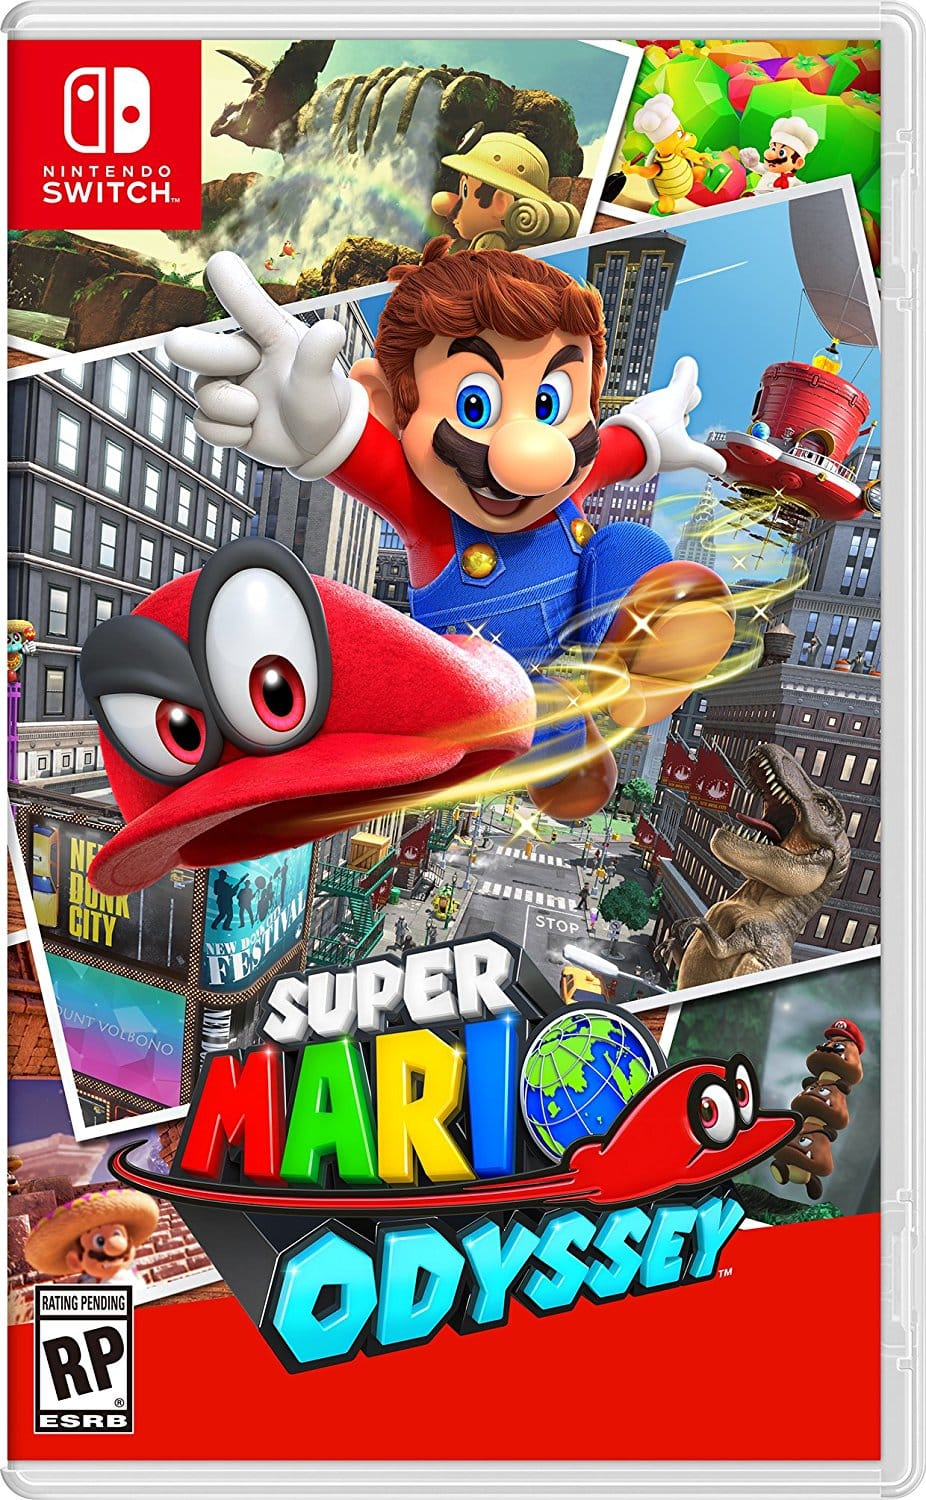 Gcu members super mario odyssey nintendo switch pre order 10 deal image xflitez Choice Image